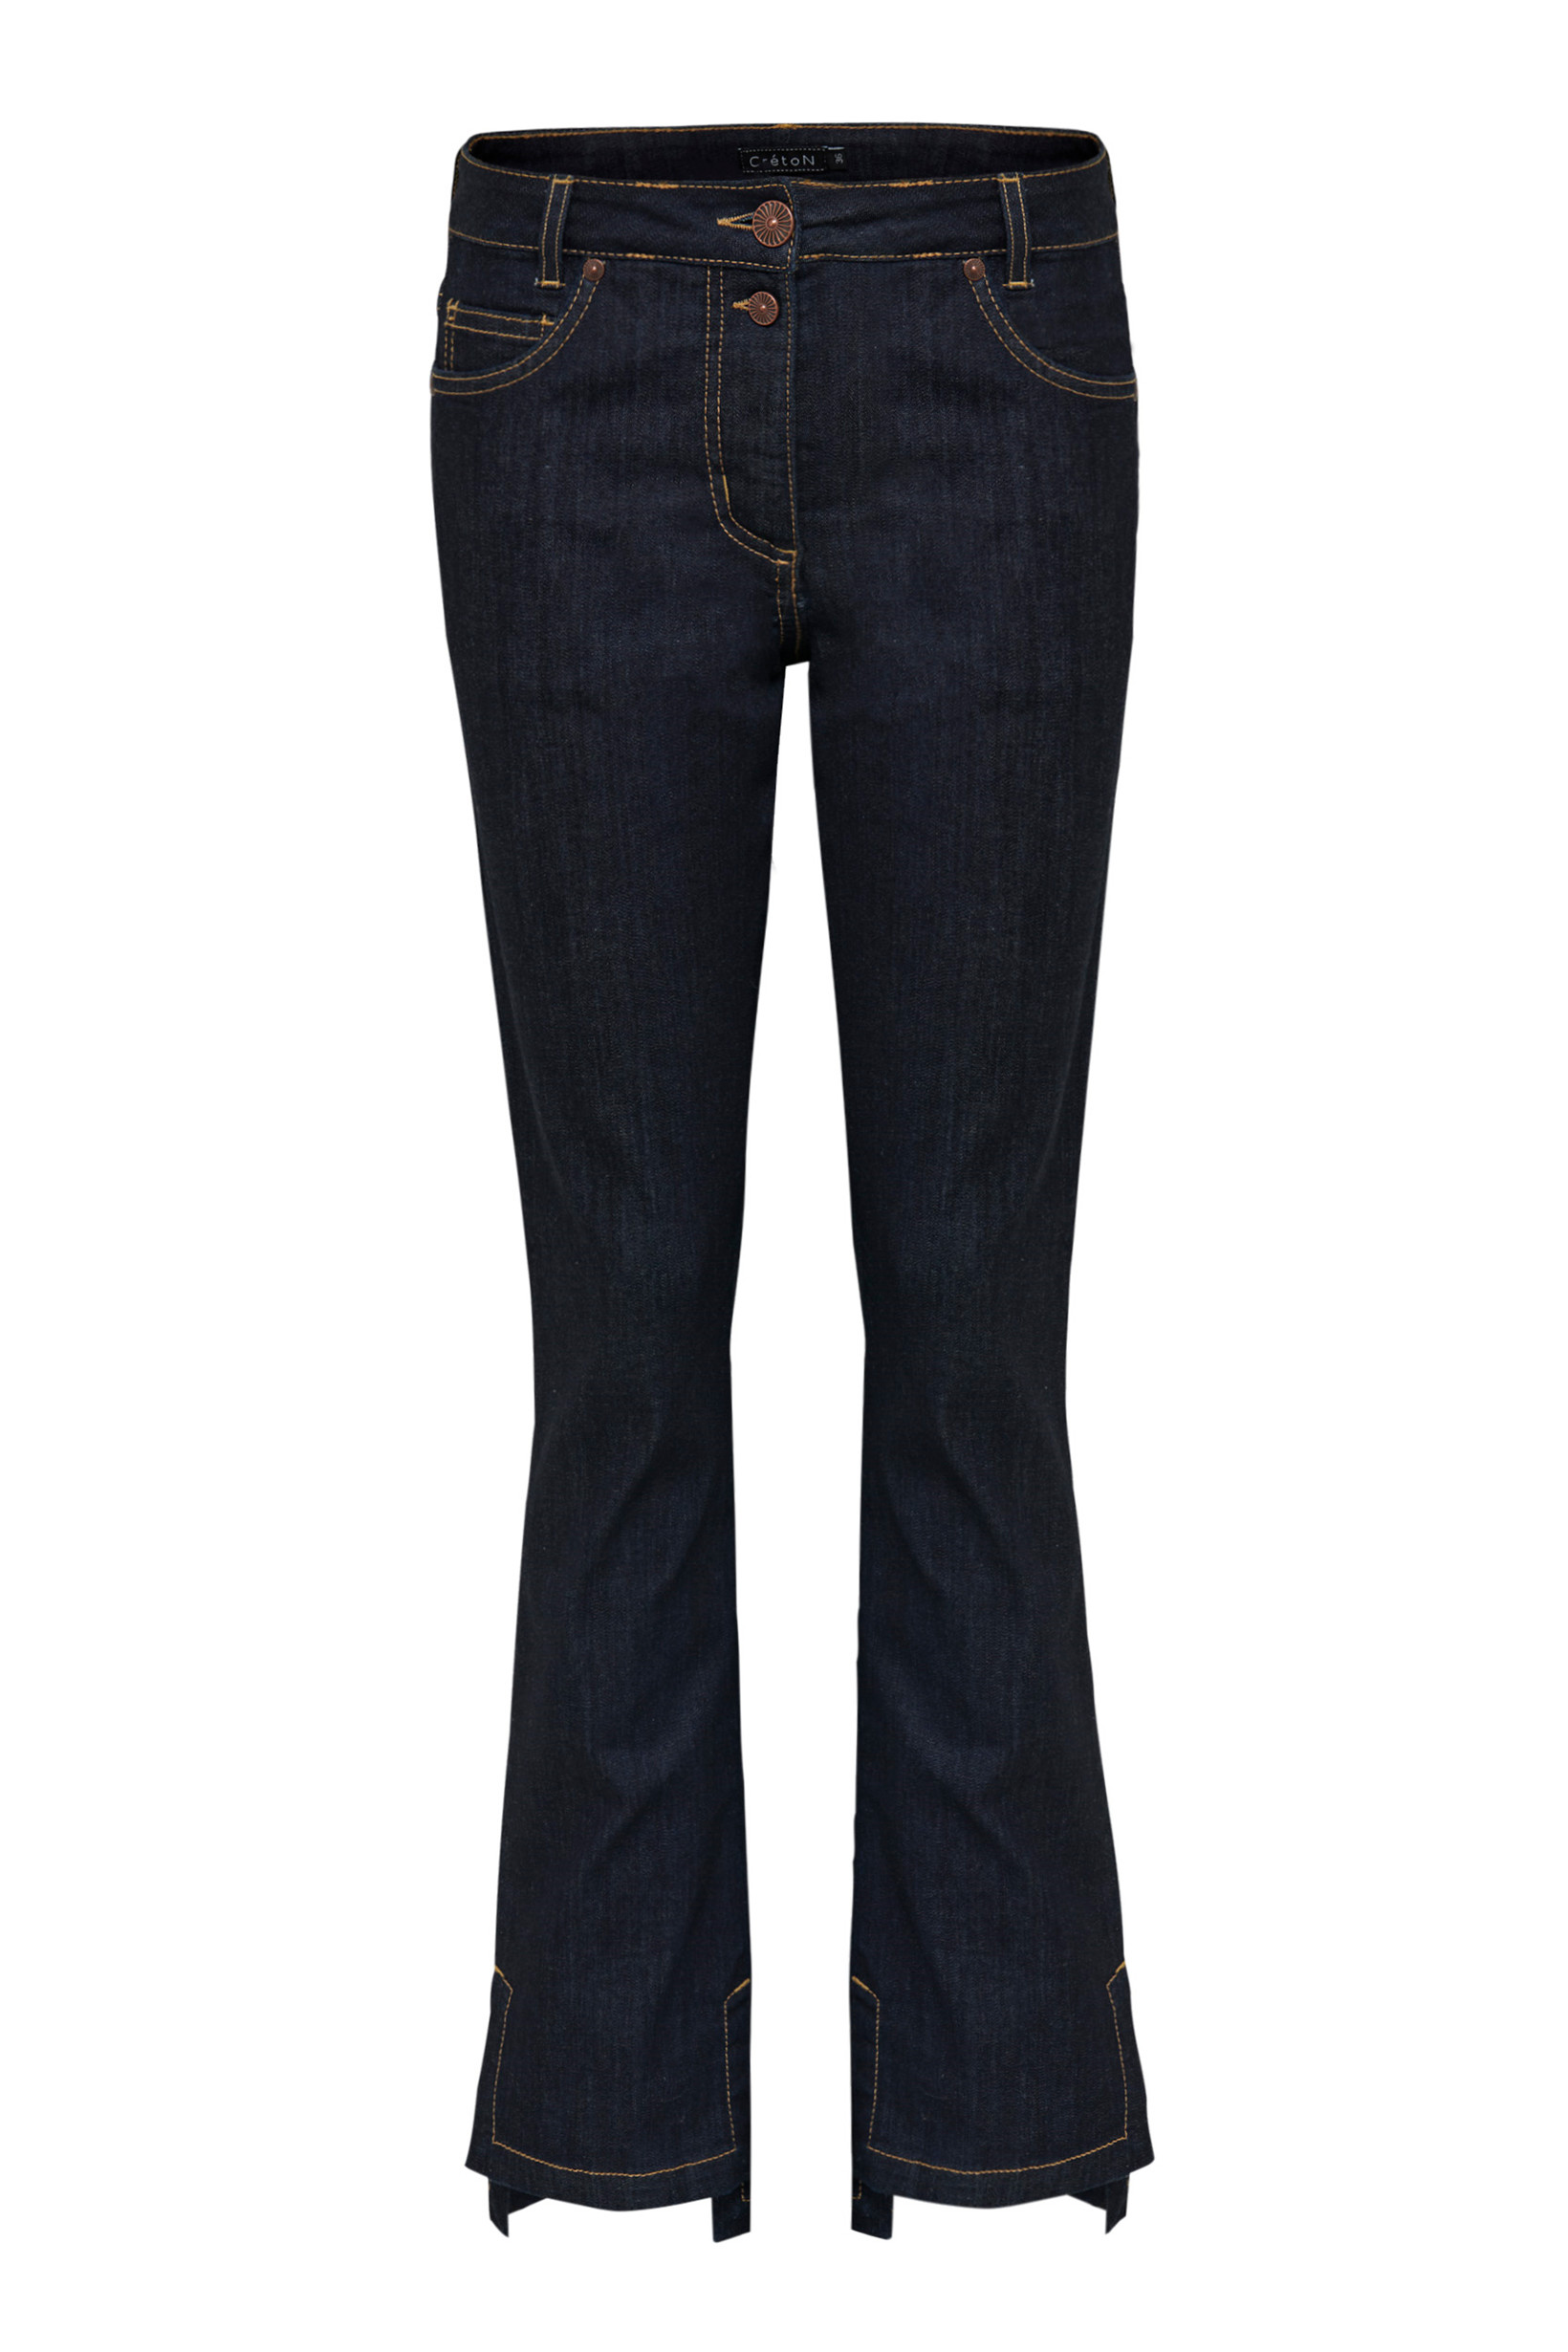 Image of   Amico Flare Jeans